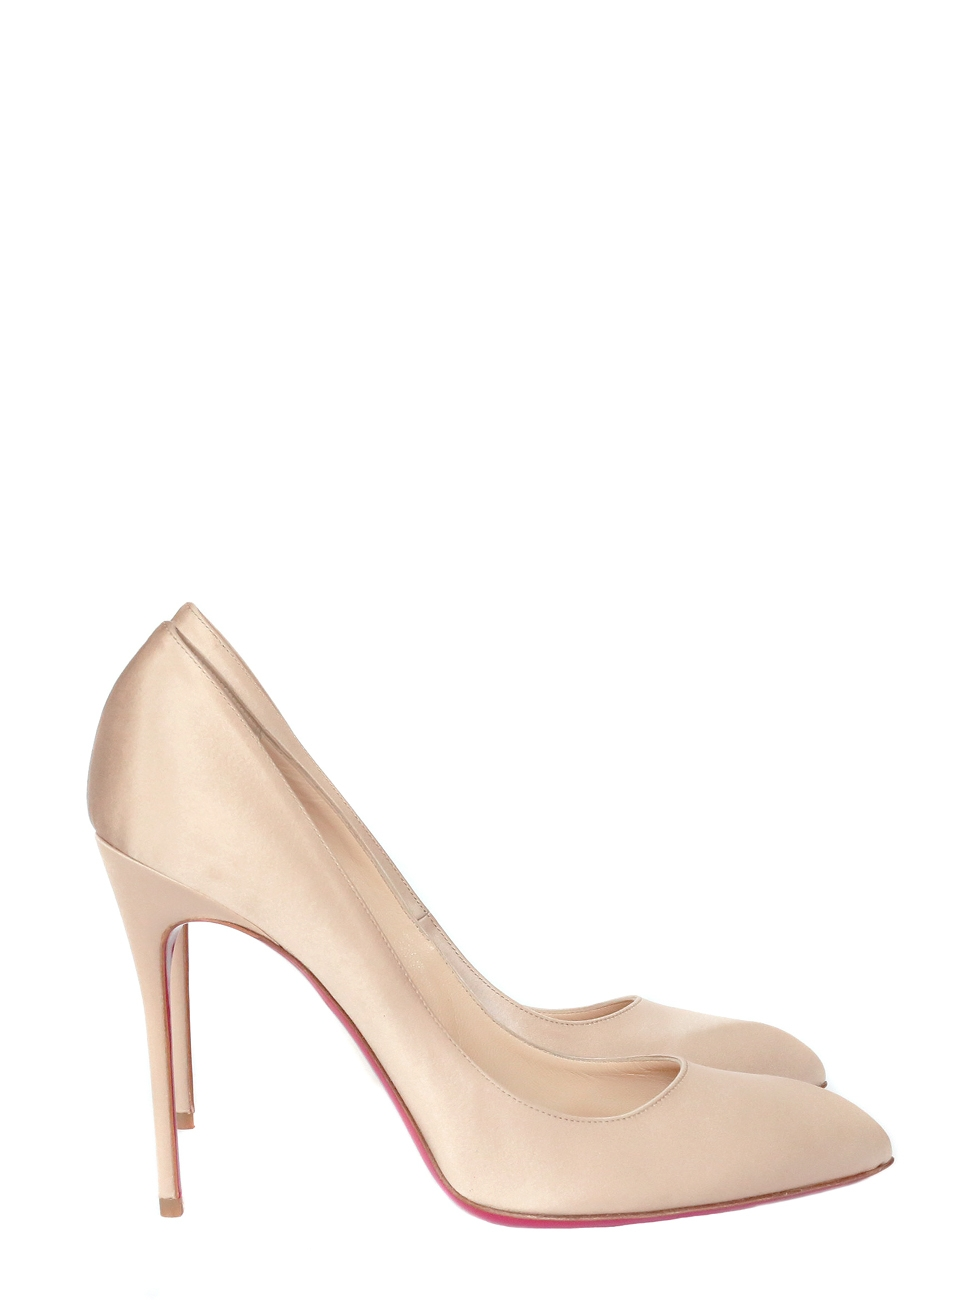 escarpins louboutin rose pale